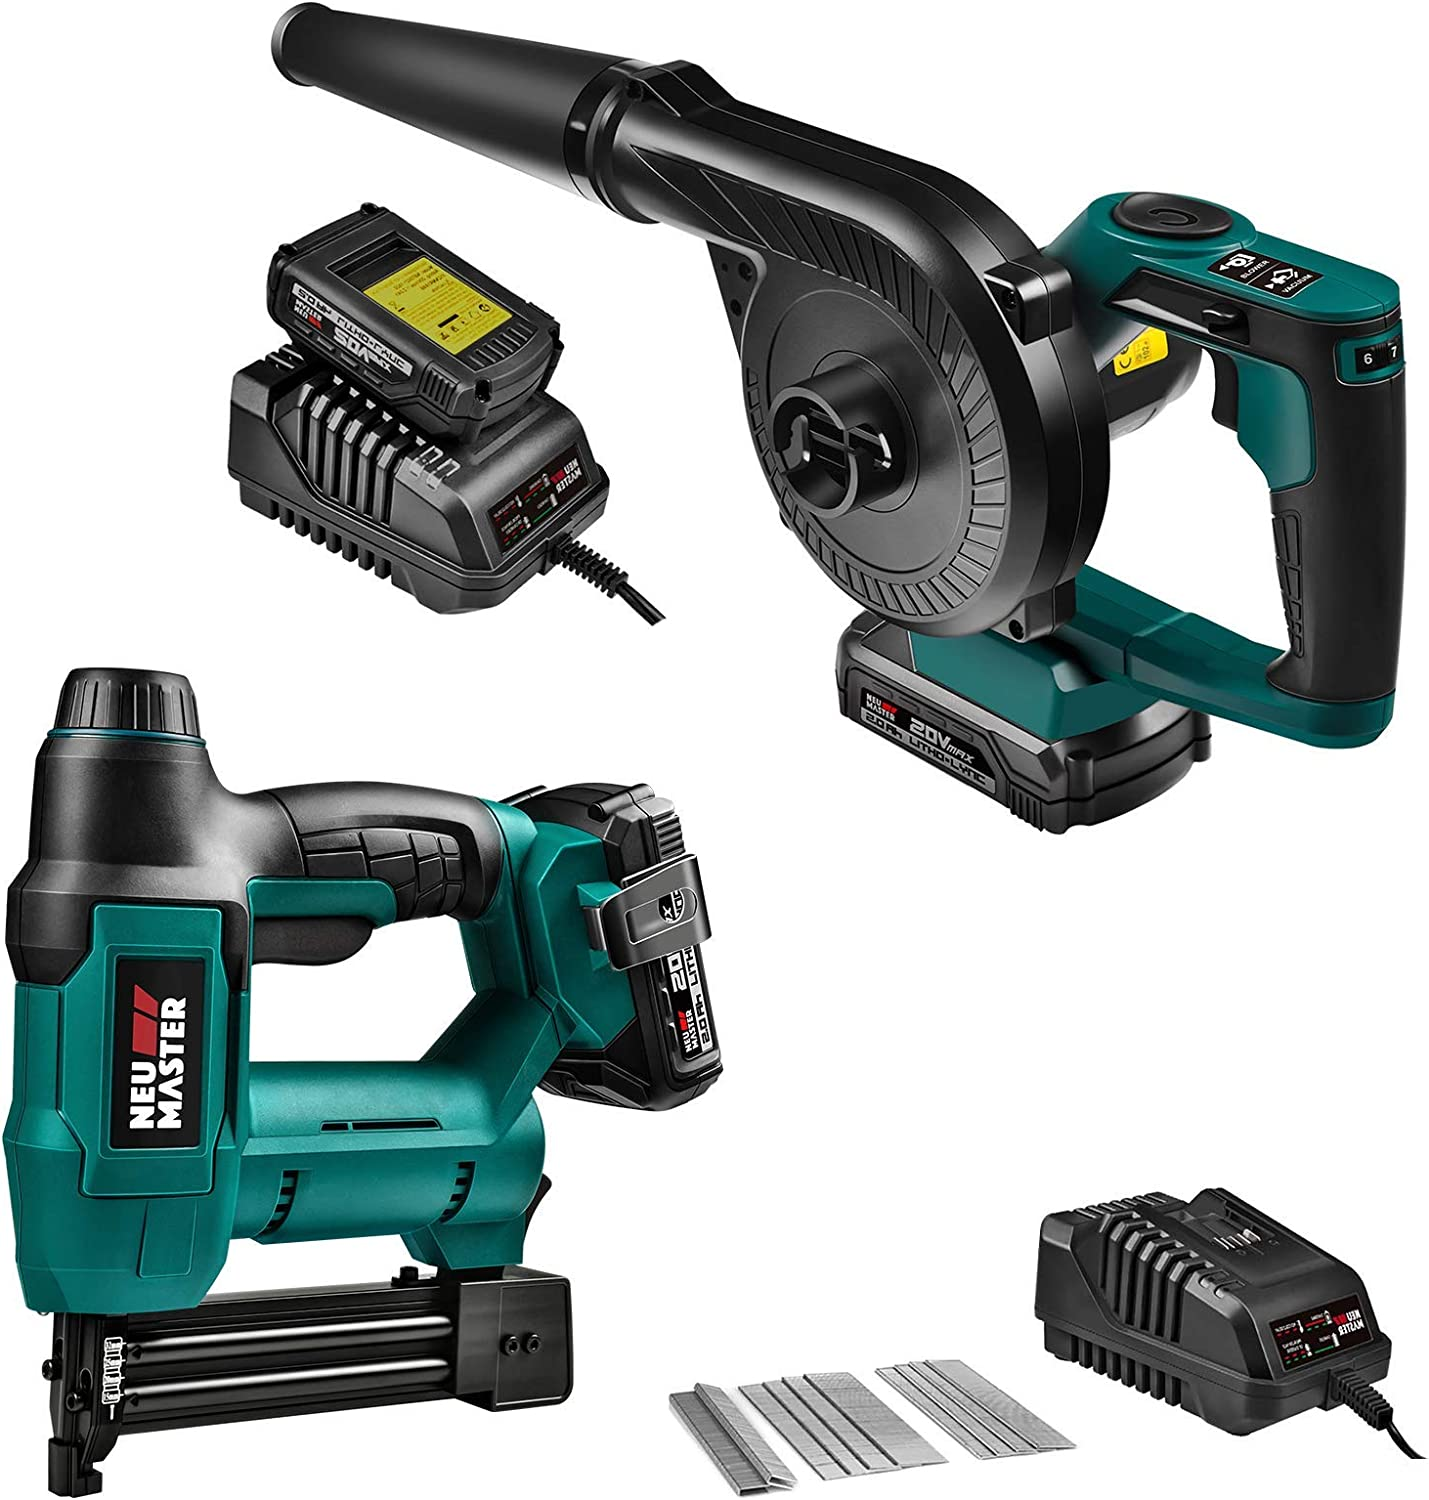 Cordless Brad Nailer (2.0Ah Battery and Charger Included) and Cordless Jobsite Blower Vacuum with Variable Speed, 20V MAX 2.0Ah Battery Included